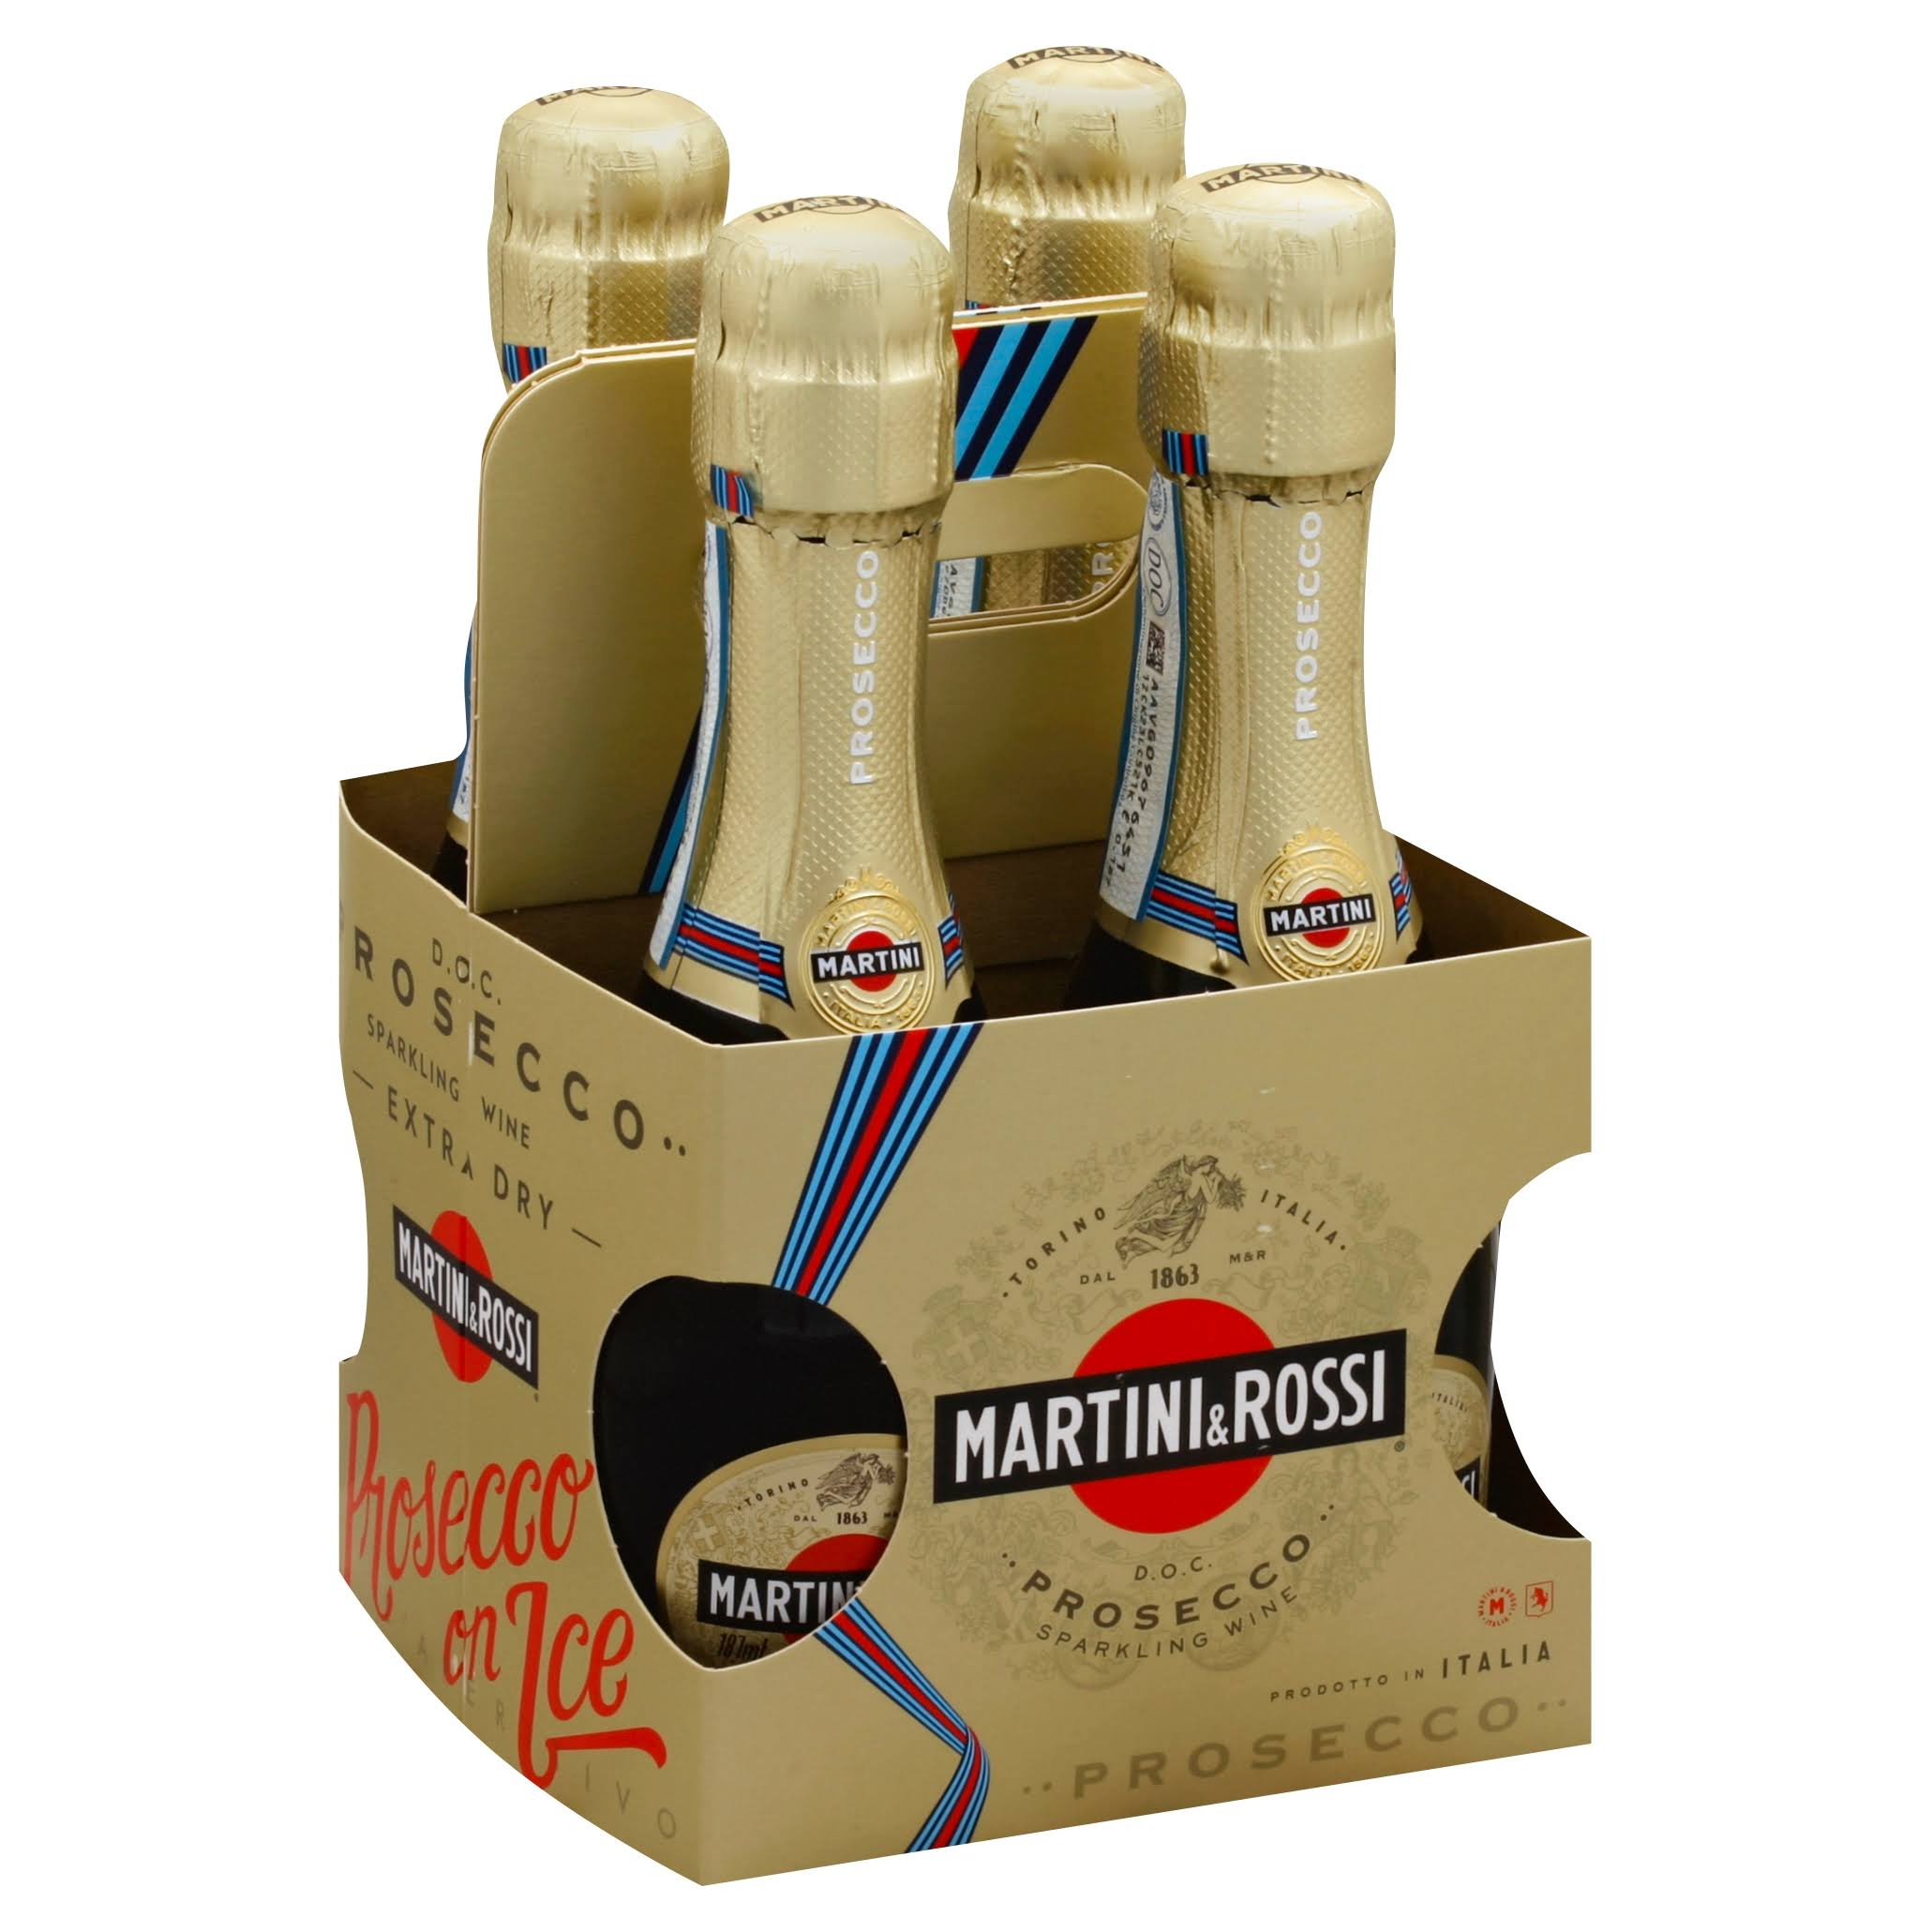 M & R Prosecco, Italy (Vintage Varies) - 4 pack, 187 ml bottles